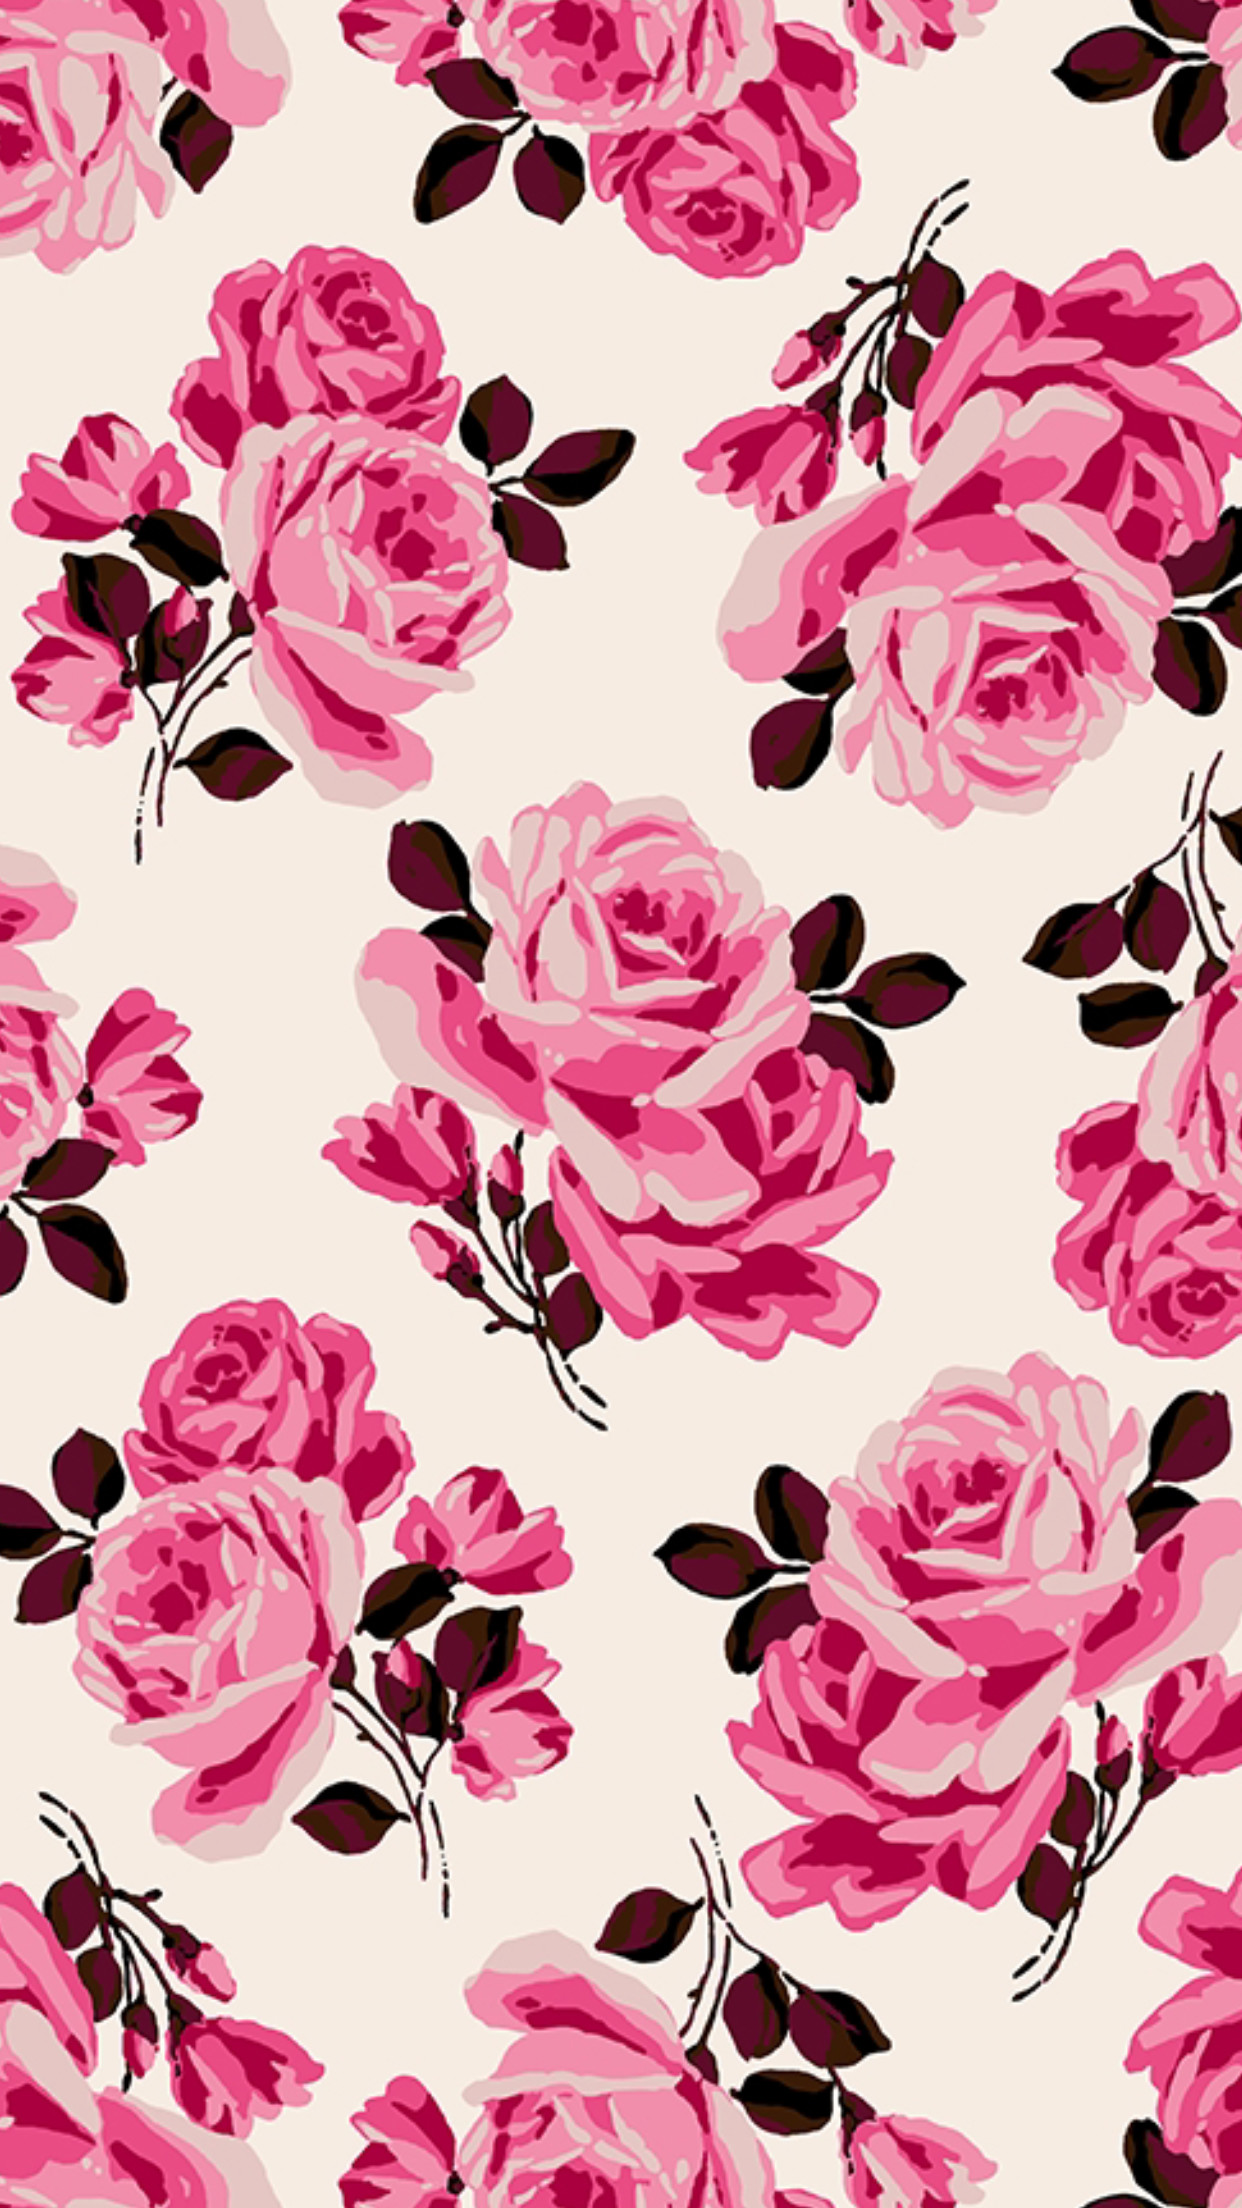 Cool Girly Wallpapers for iPhone (70+ images)